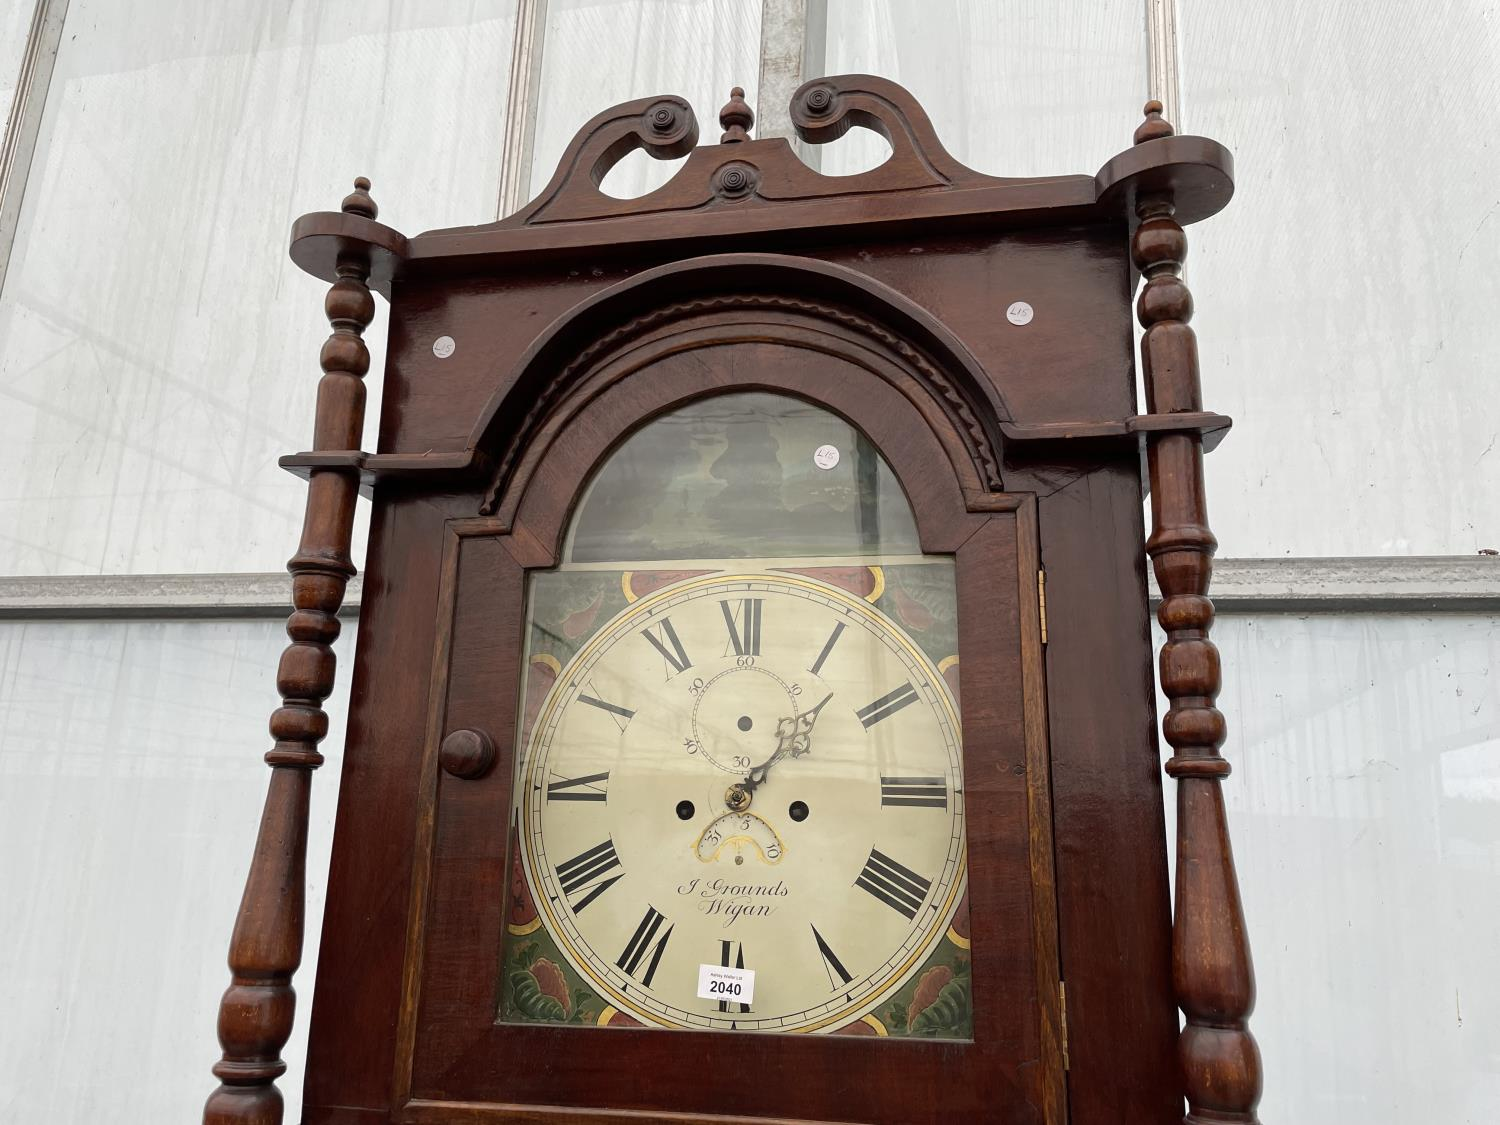 A 19TH CENTURY AND LATER EIGHT DAY MAHOGANY AND INLAID LONGCASE CLOCK WITH ENAMEL DIAL (GROUNDS, - Image 2 of 8